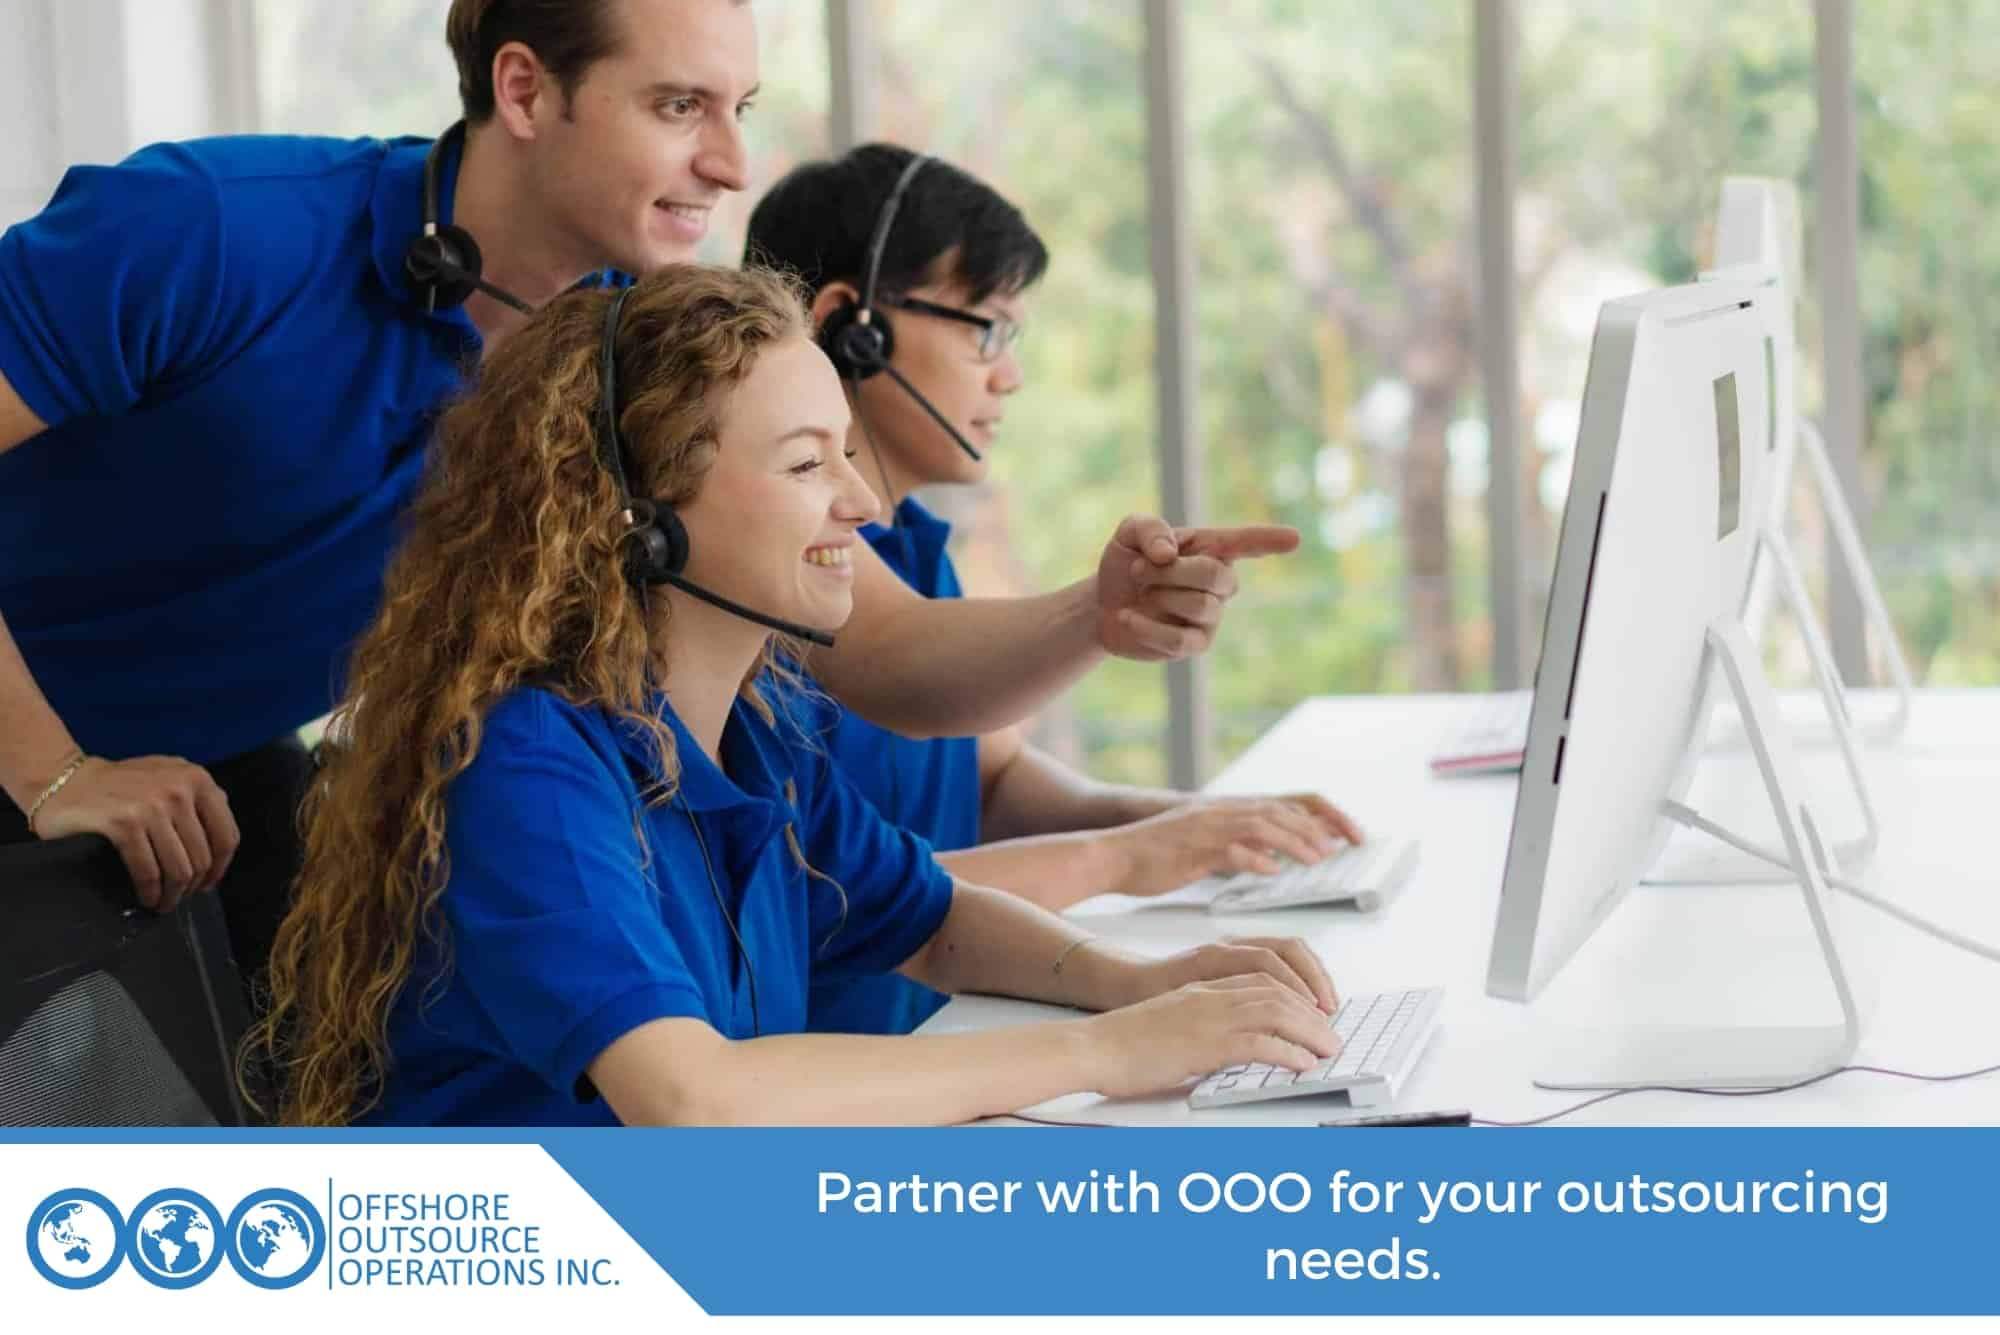 Partner with OOO for your outsourcing needs.